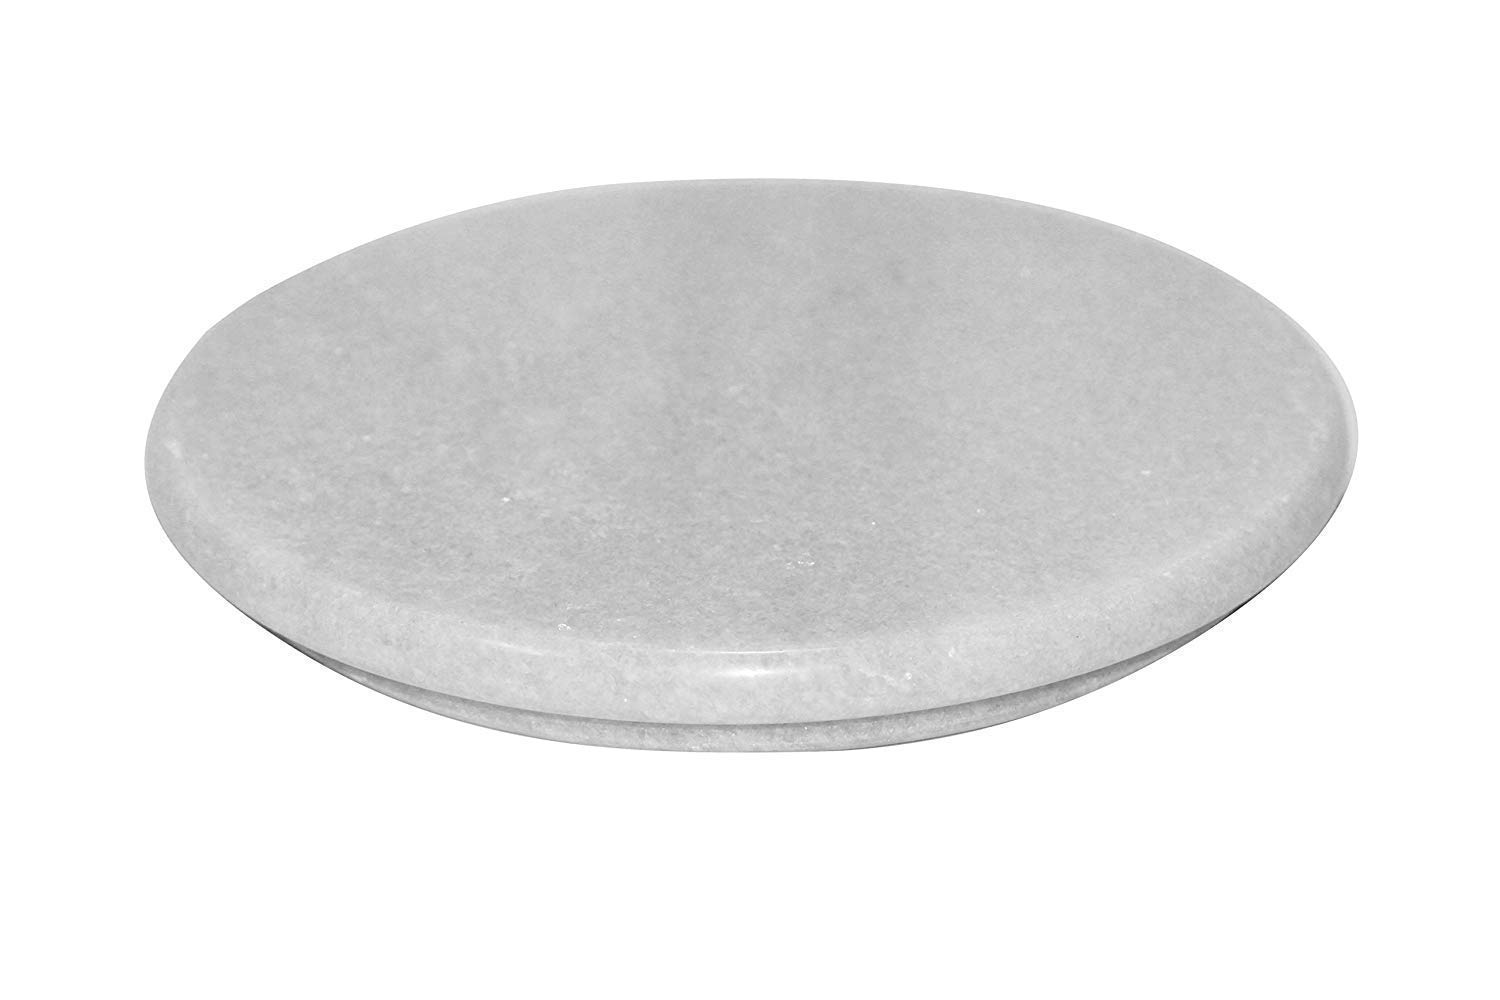 Shopnetix Marble Chakla/Marble Roti Maker/Marble Rolling Board,Large Size 9 Inch (22 cm) (White) product image